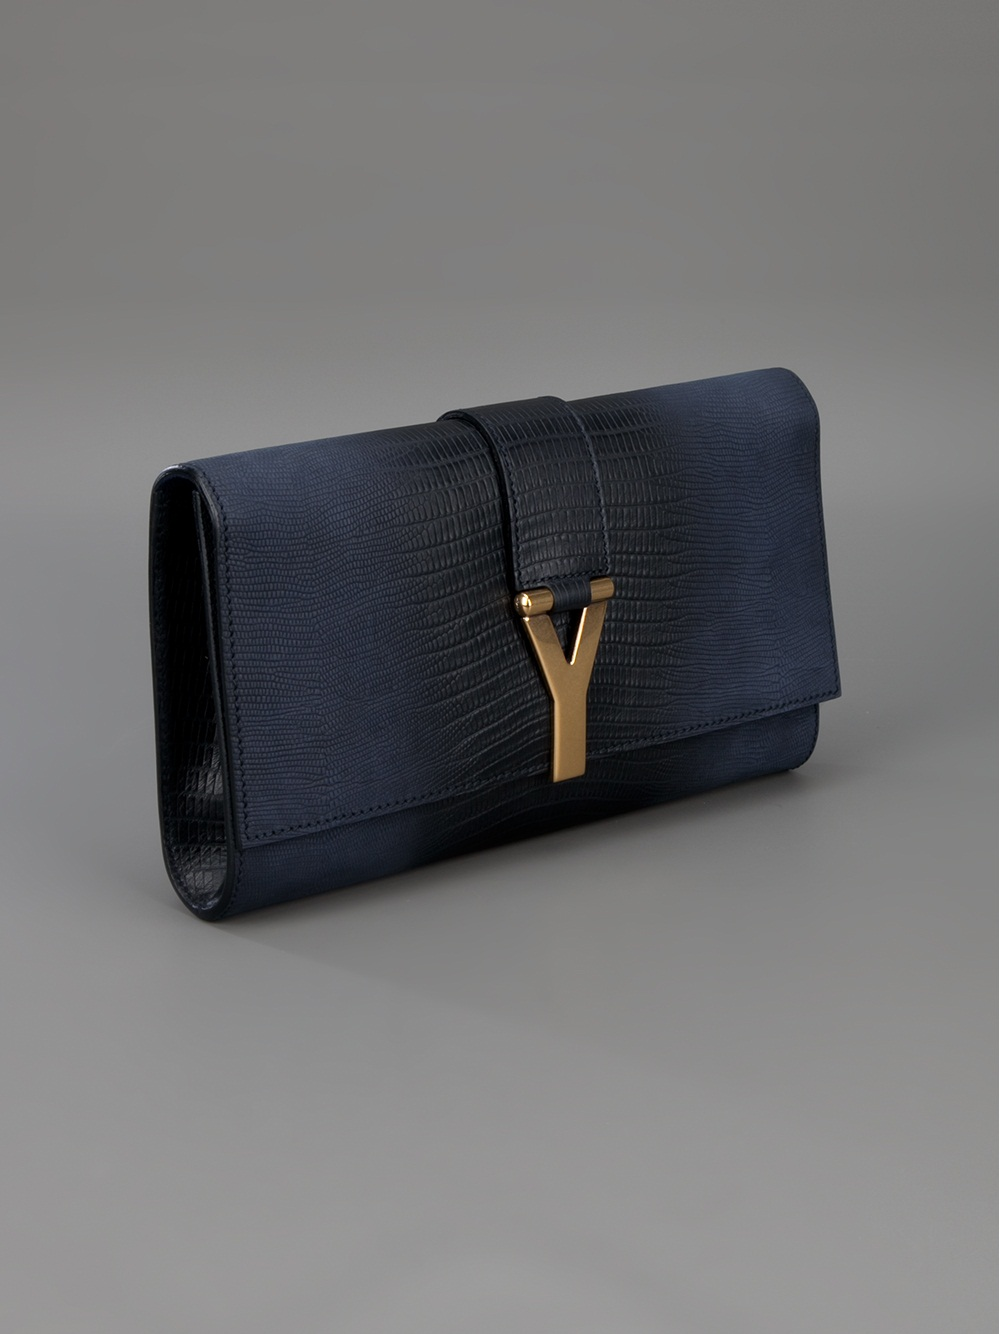 yves st laurent clutch - Saint laurent Cabas Chyc Clutch in Blue | Lyst